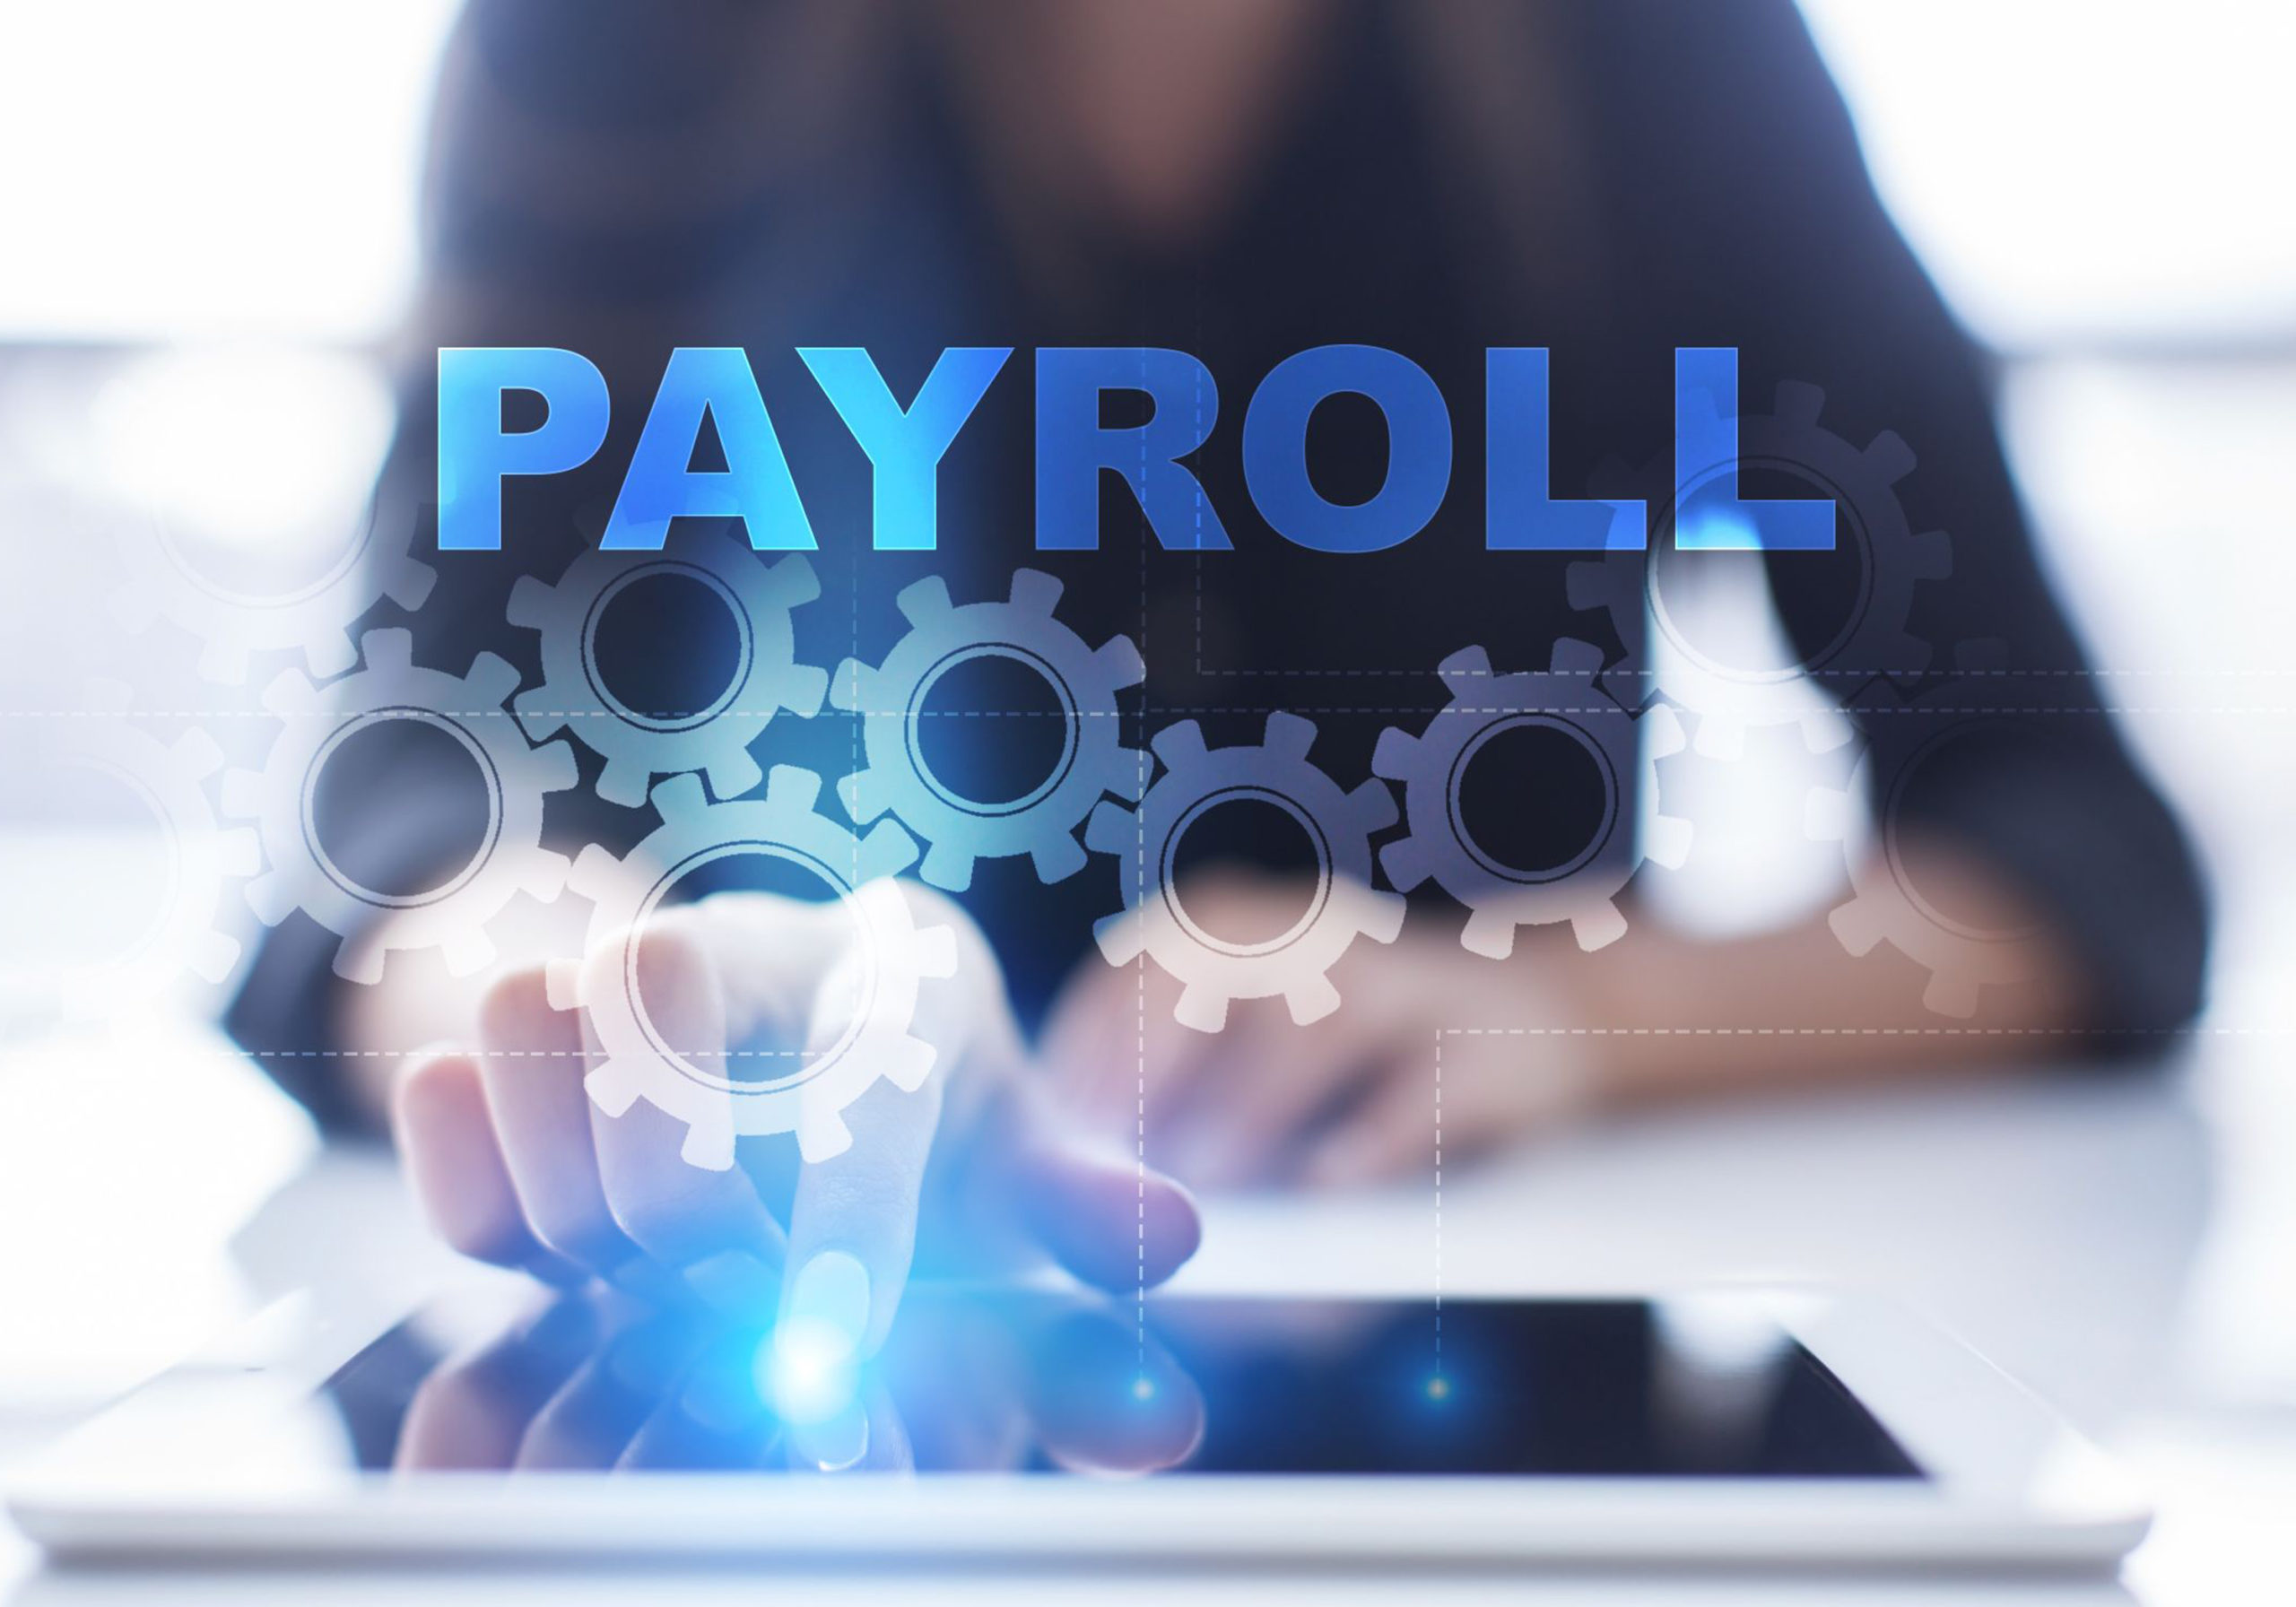 Payroll mistakes that benefits employee